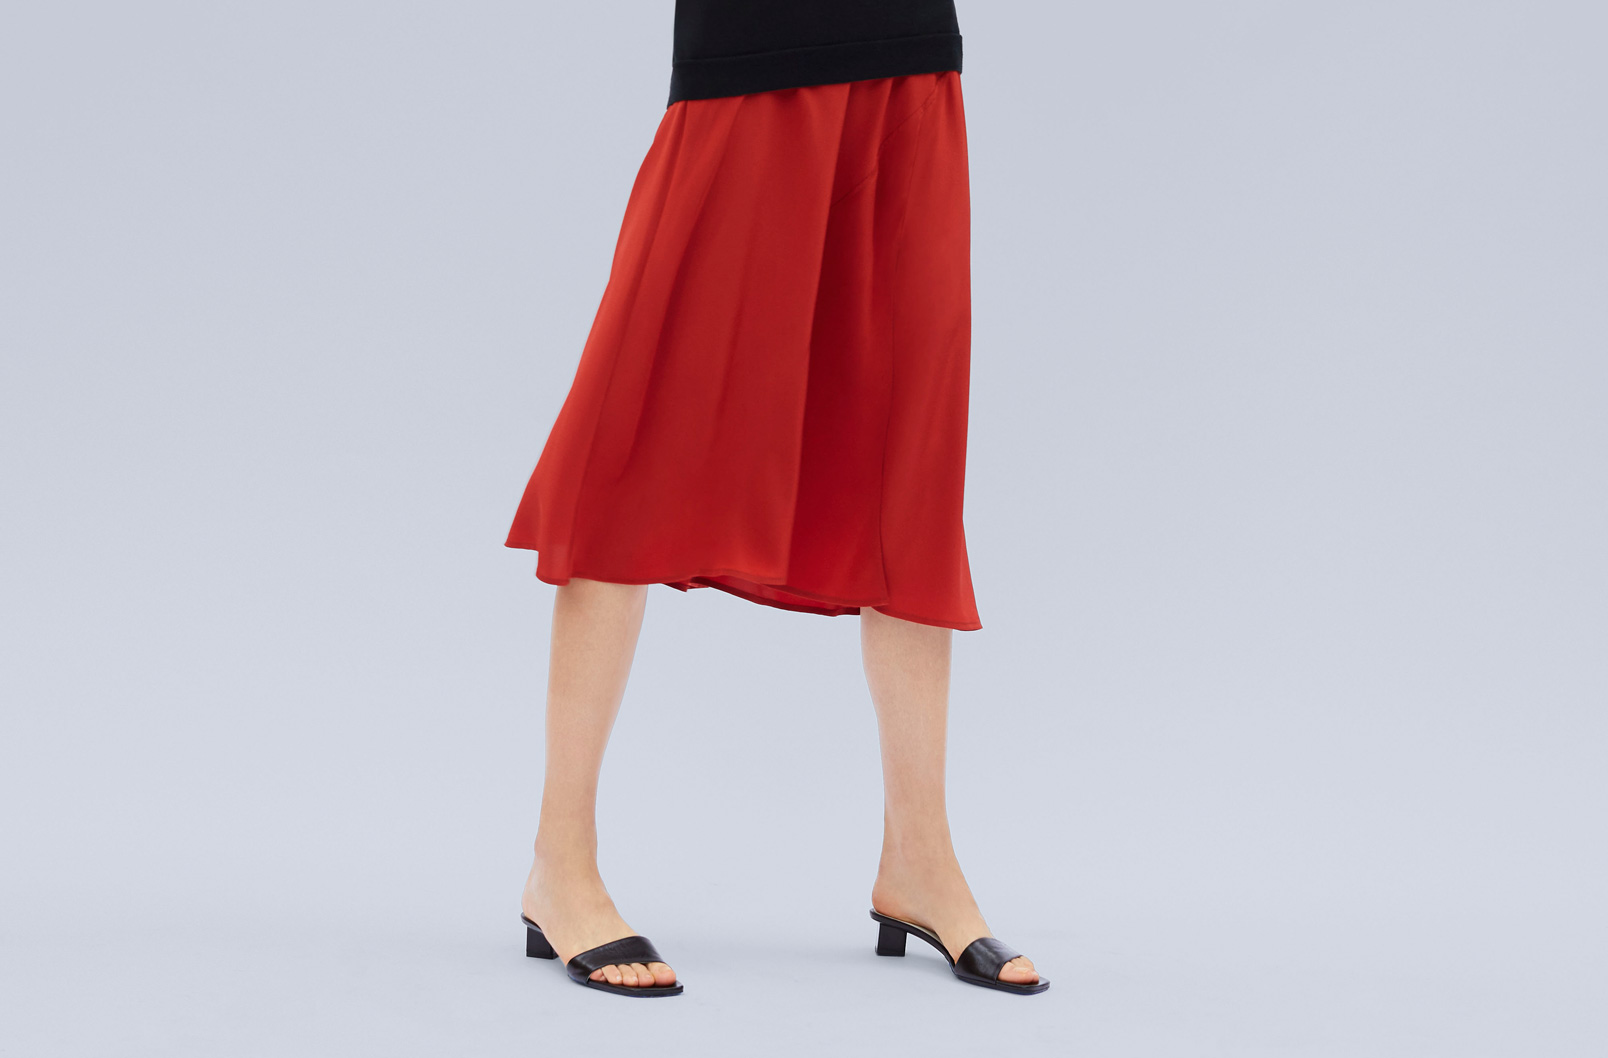 Image of Silk Asymmetrical Skirt on model